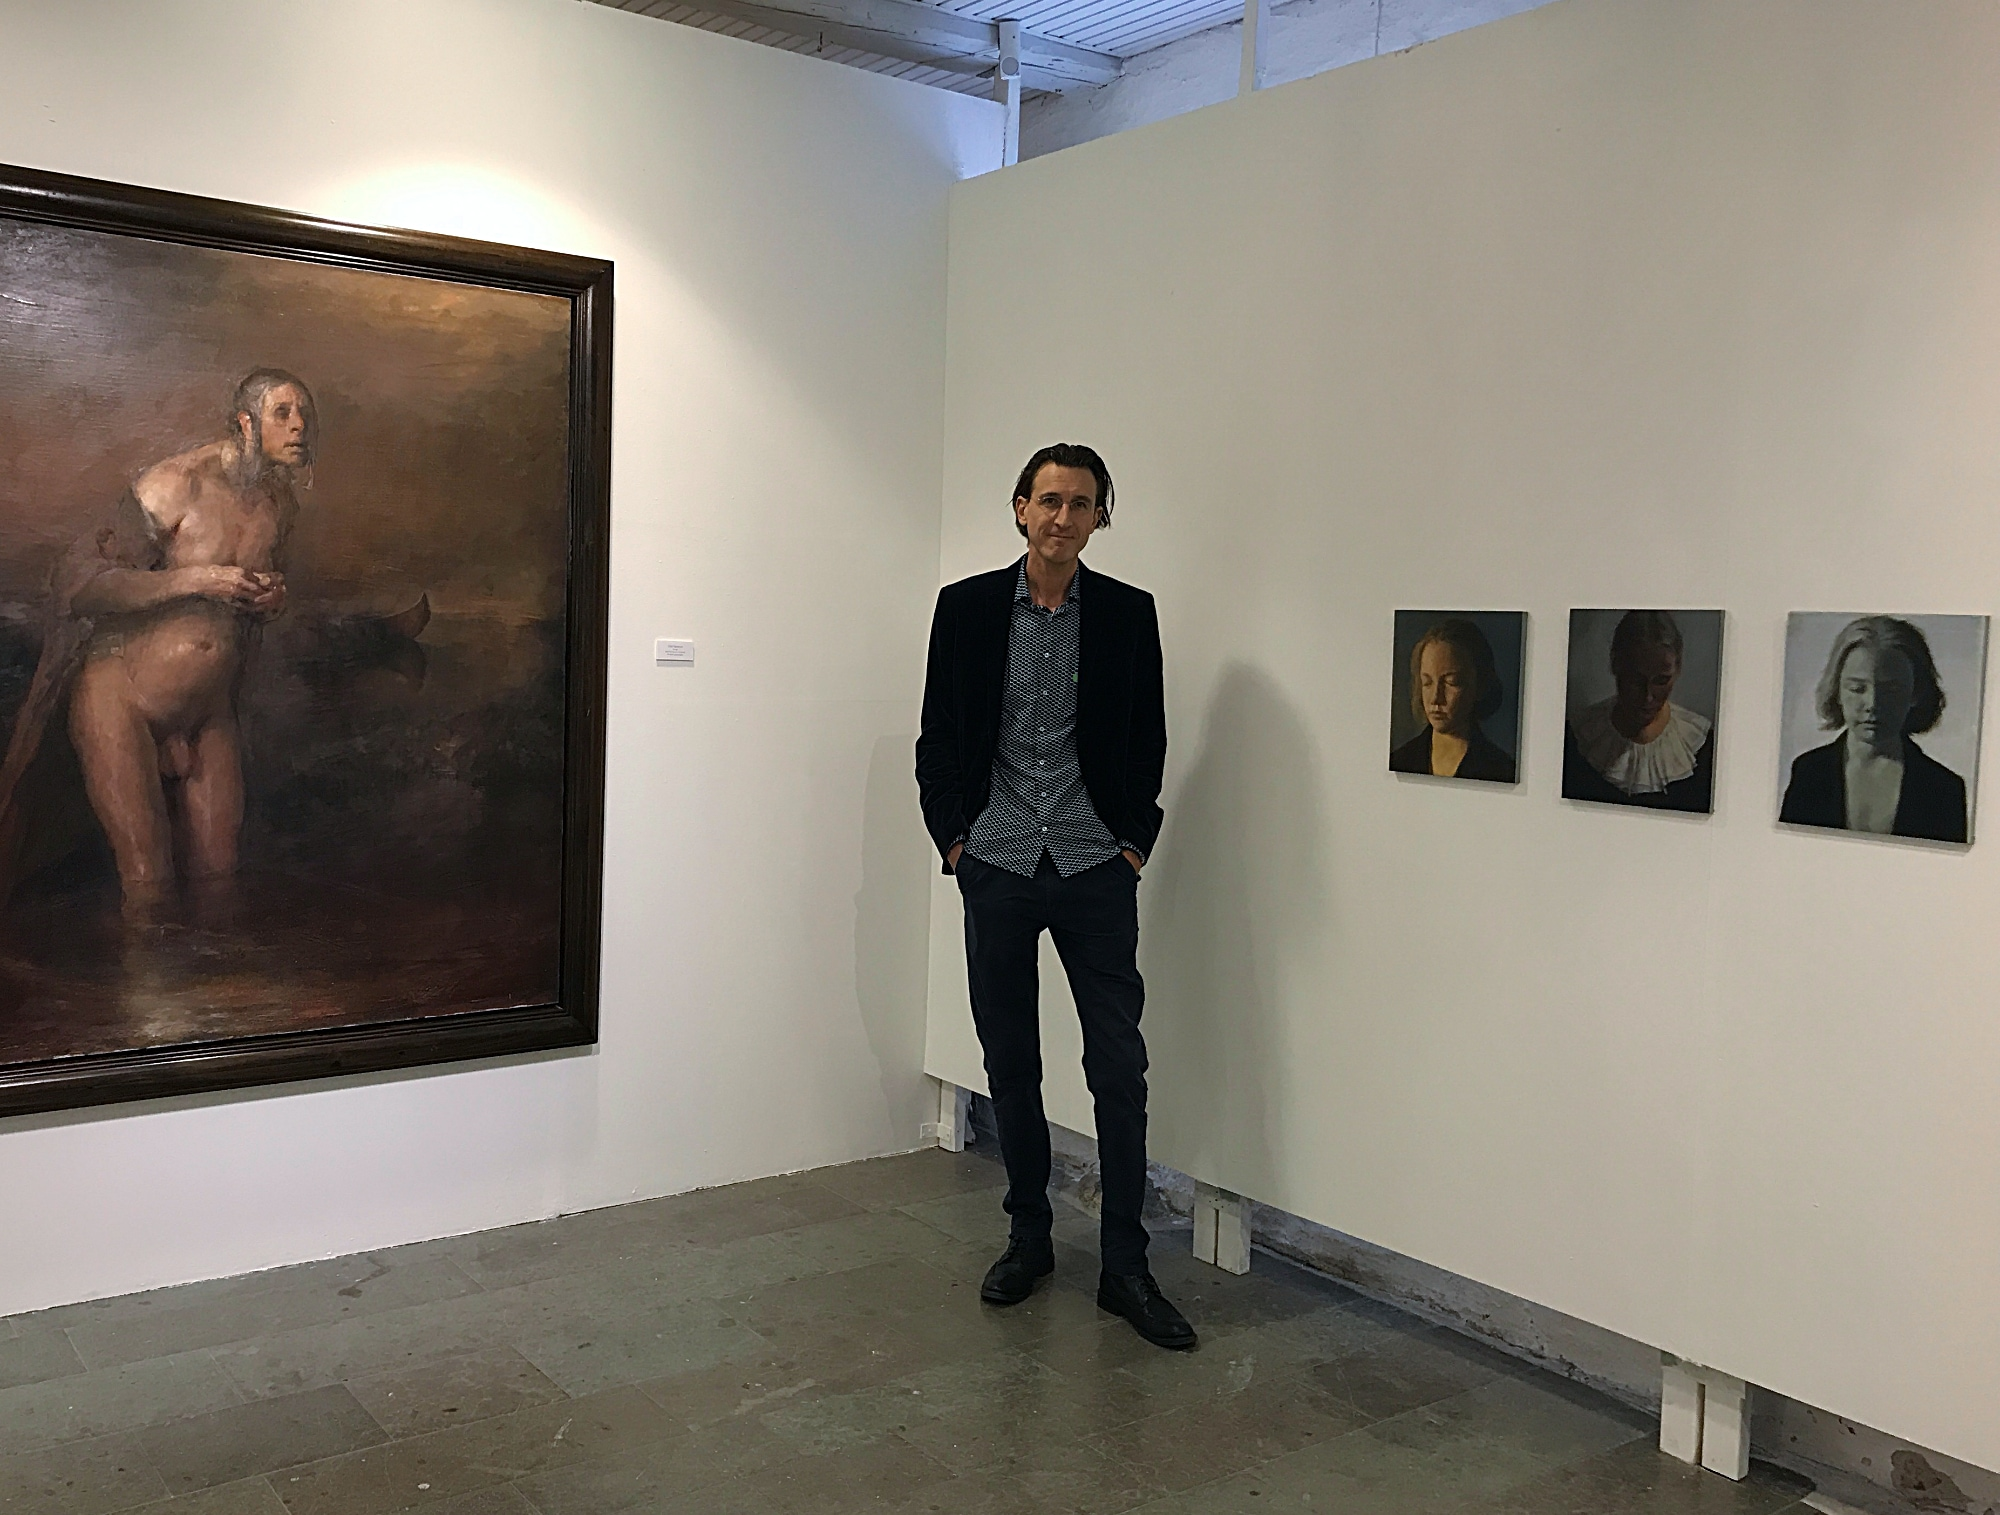 Black Star, Edsvik Konsthall 2018: Mikael Rydh with the paintings  The Dream ,  Abidance  and  White Hour .  (Odd Nerdrum painting to the left.)